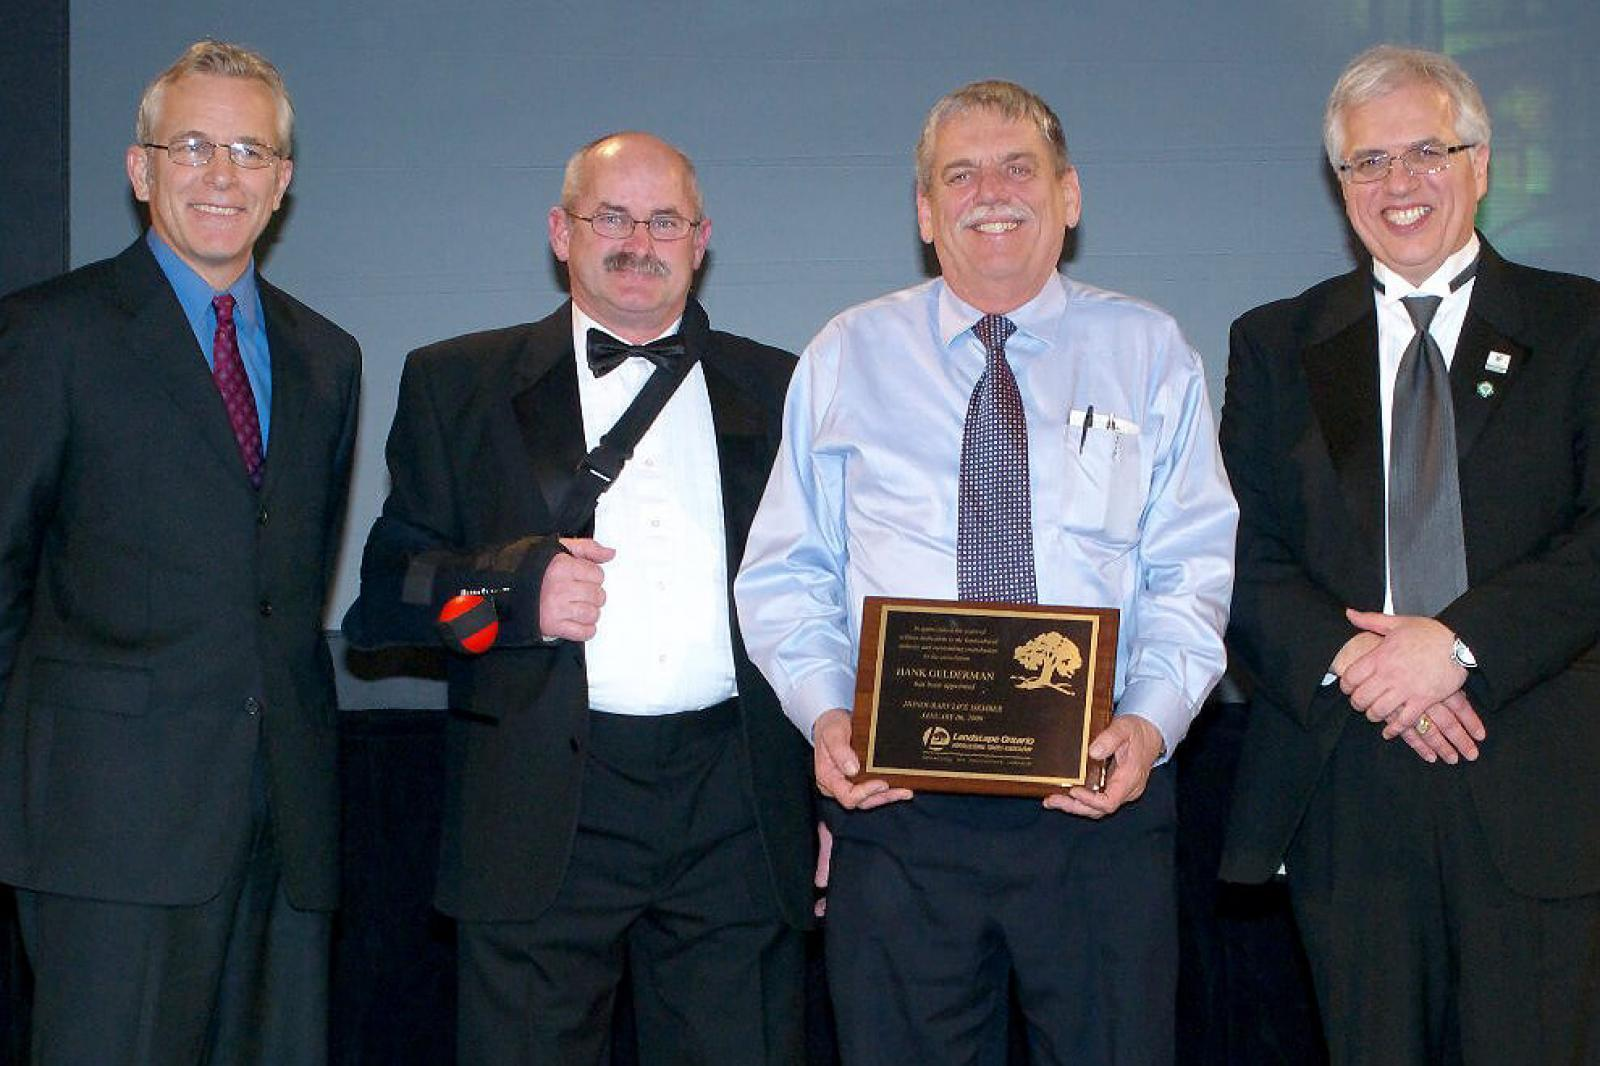 Only nine people in the history of Landscape Ontario have received a Life Membership. Hank Gelderman received the honour in 2009. In photo at the presentation, are from left, Bob Tubby, past president, Bob Adams, president in 2009, Hank Gelderman, and Tony DiGiovanni, executive director.